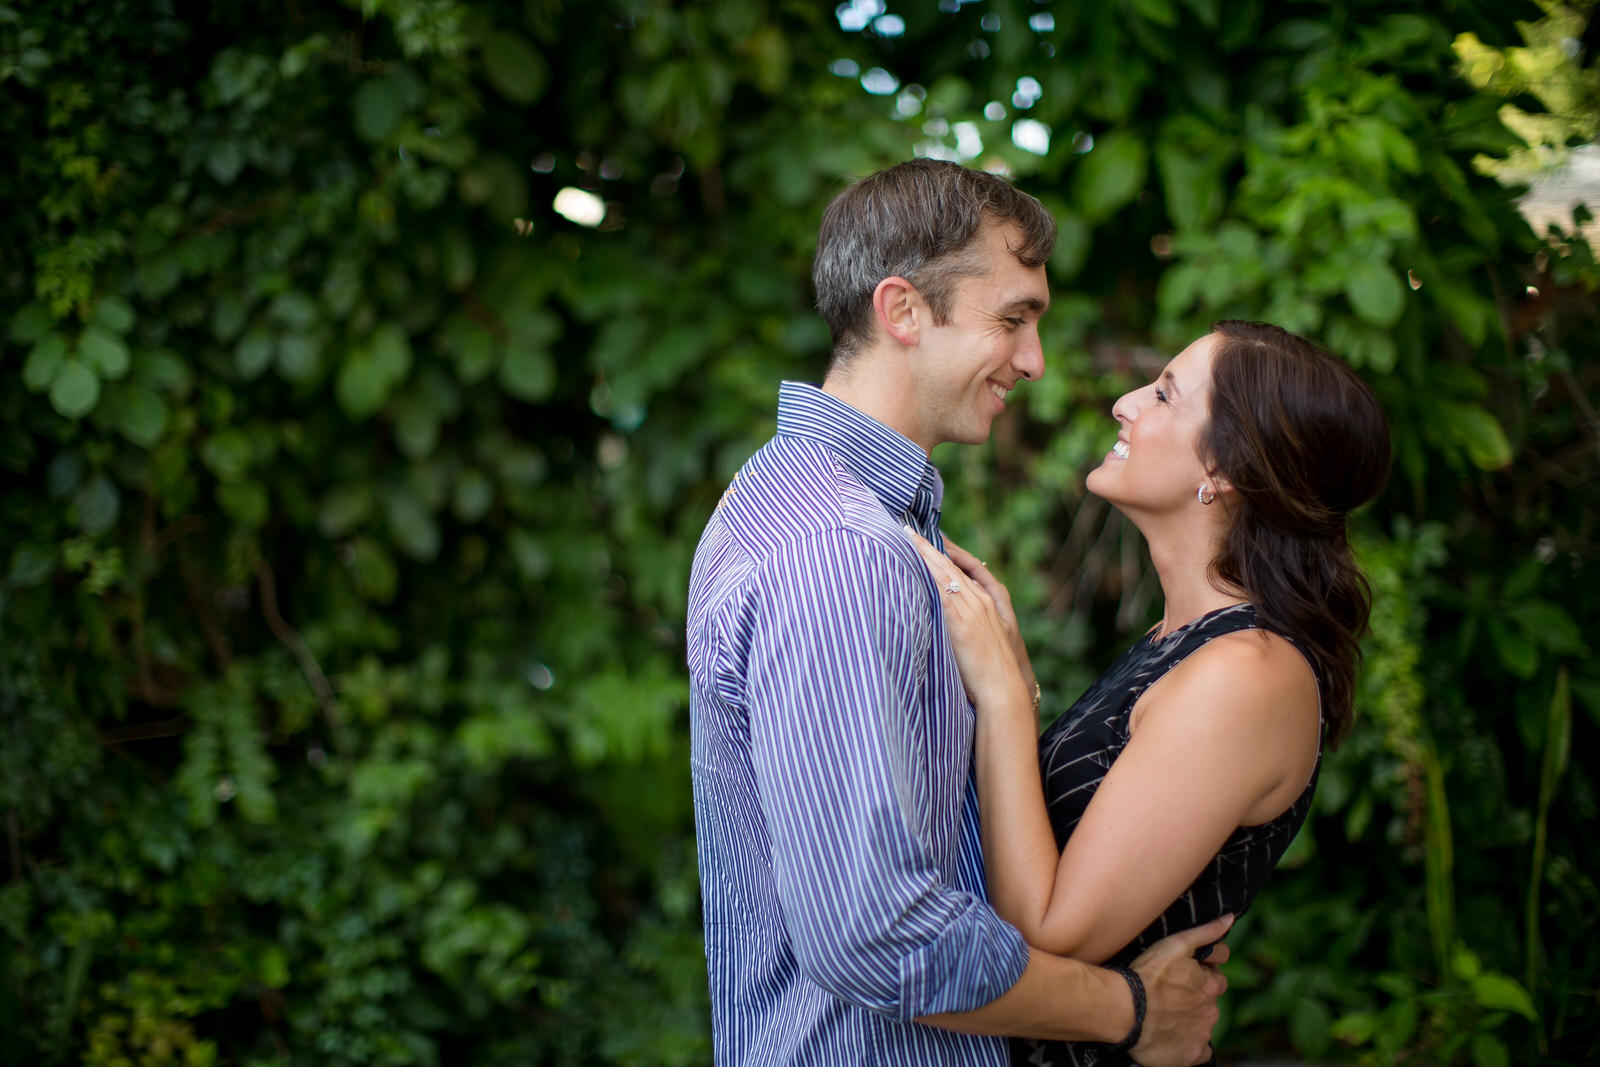 fun-photography-for-couples-in-love-tiny-house-photo.jpg